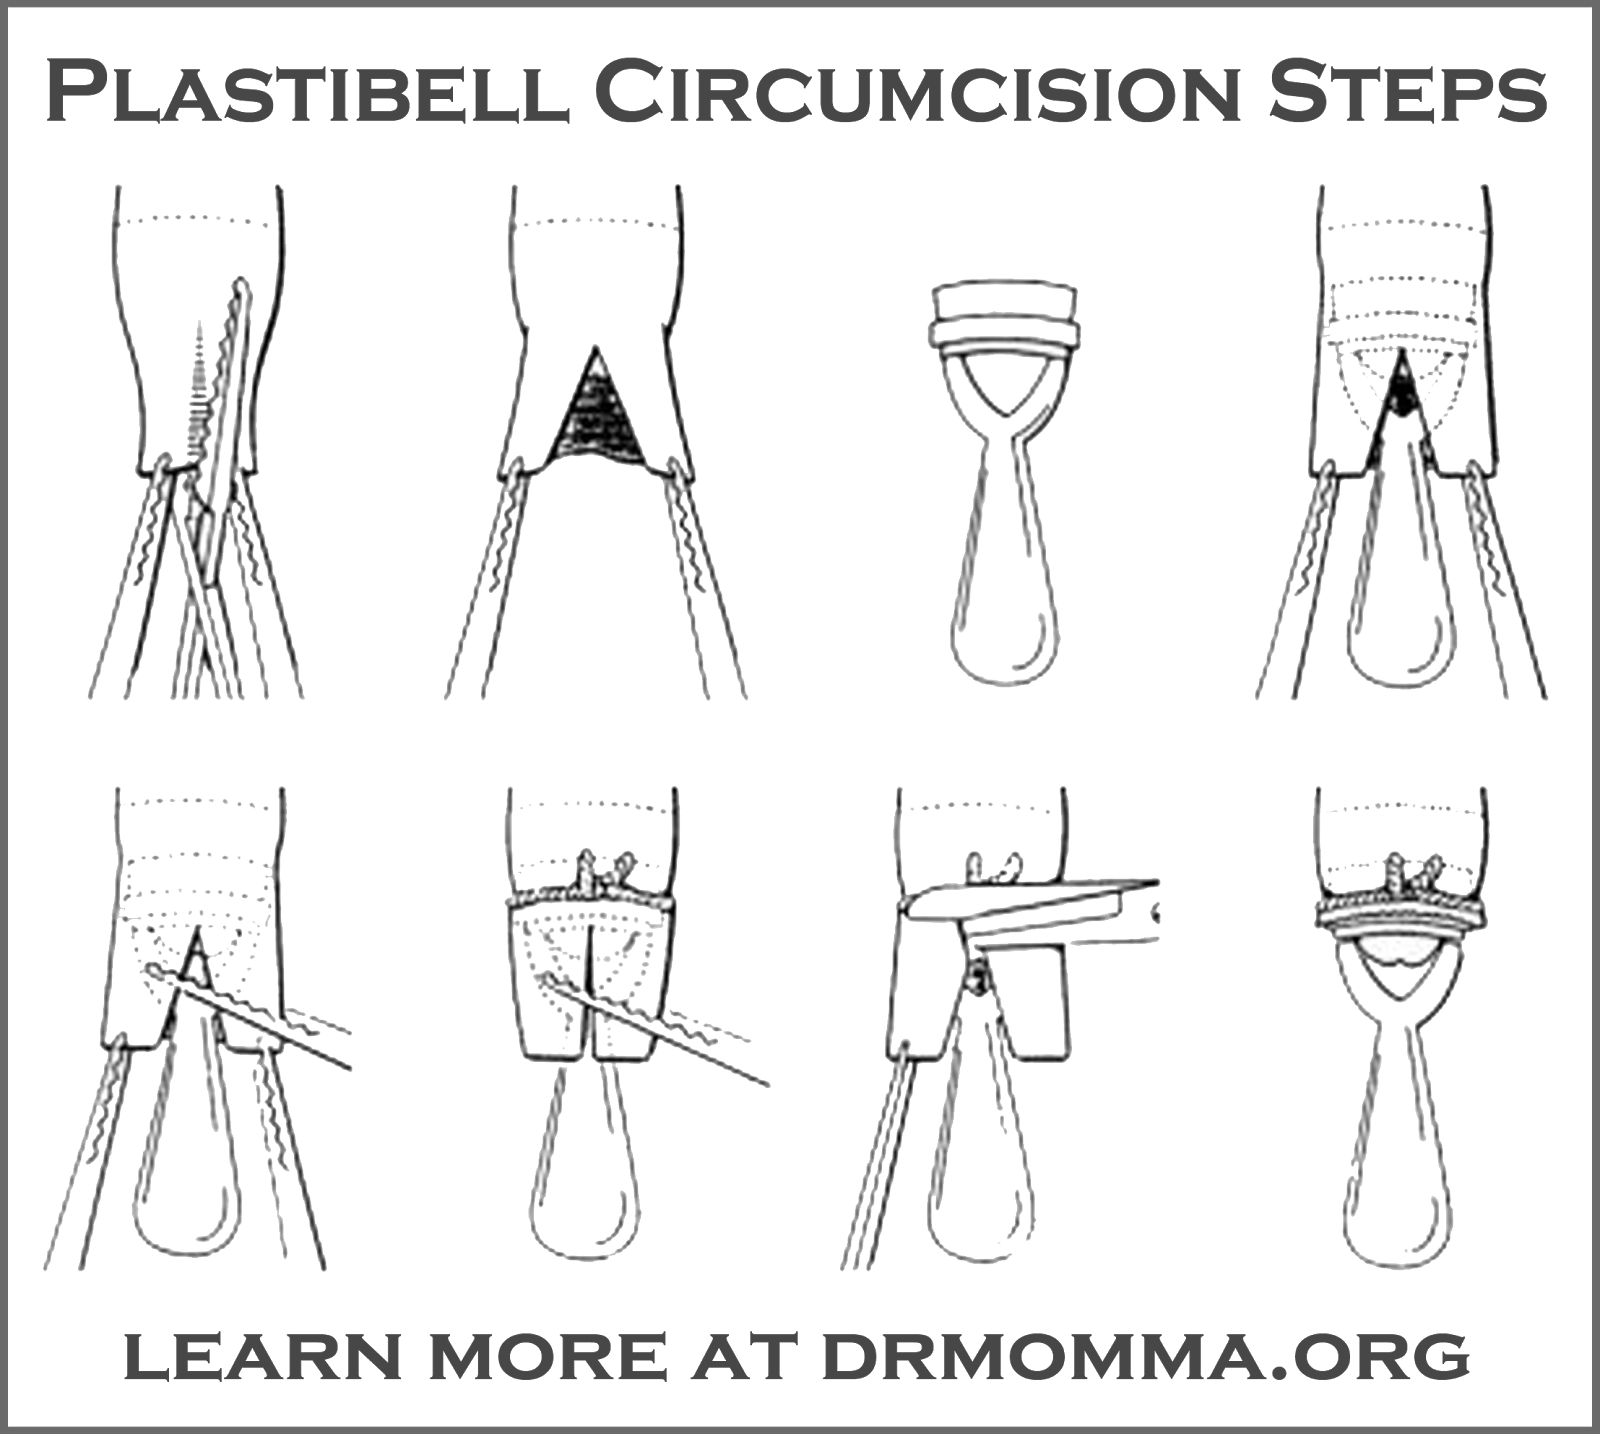 Why circumcision is necessary 3